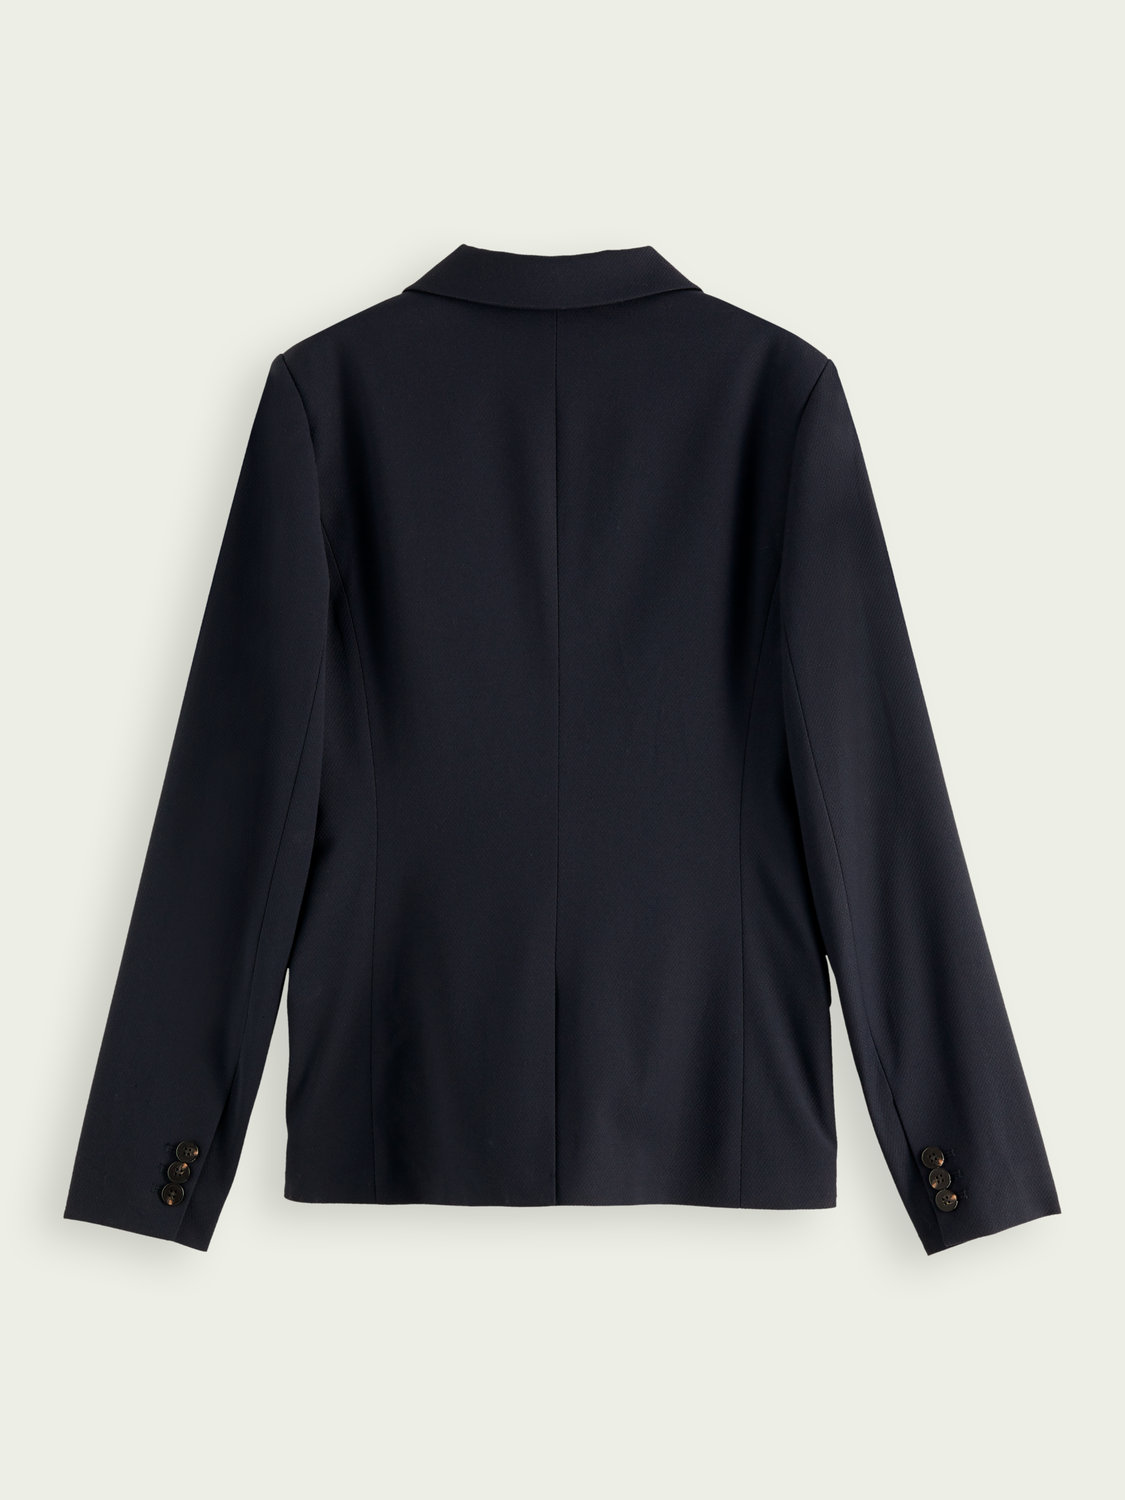 Damen Classic tailored blazer